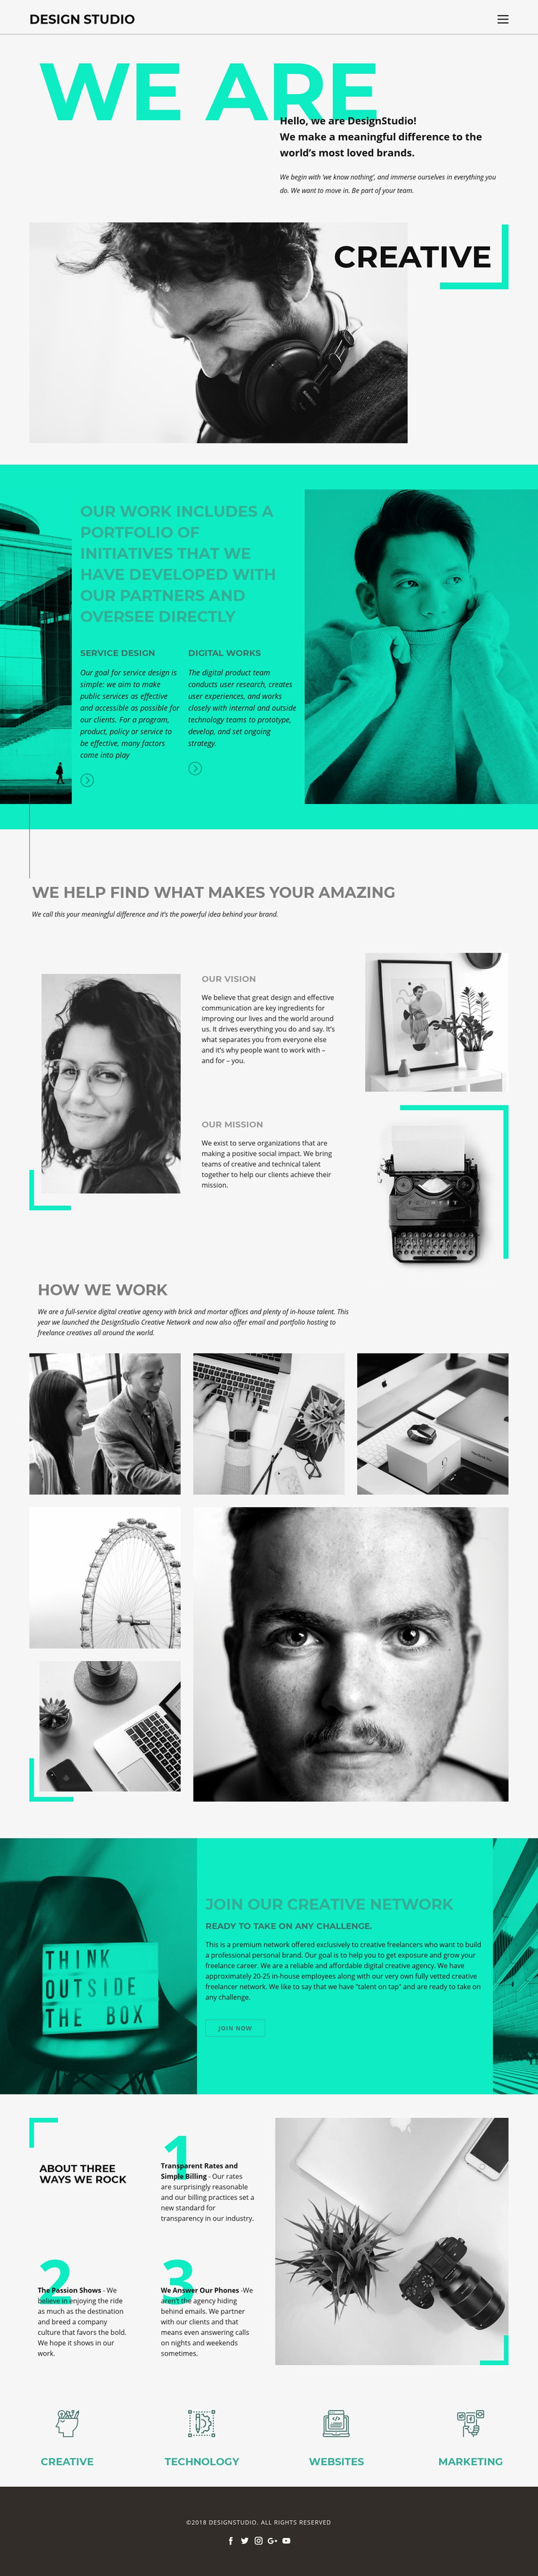 We are creative business Web Page Design